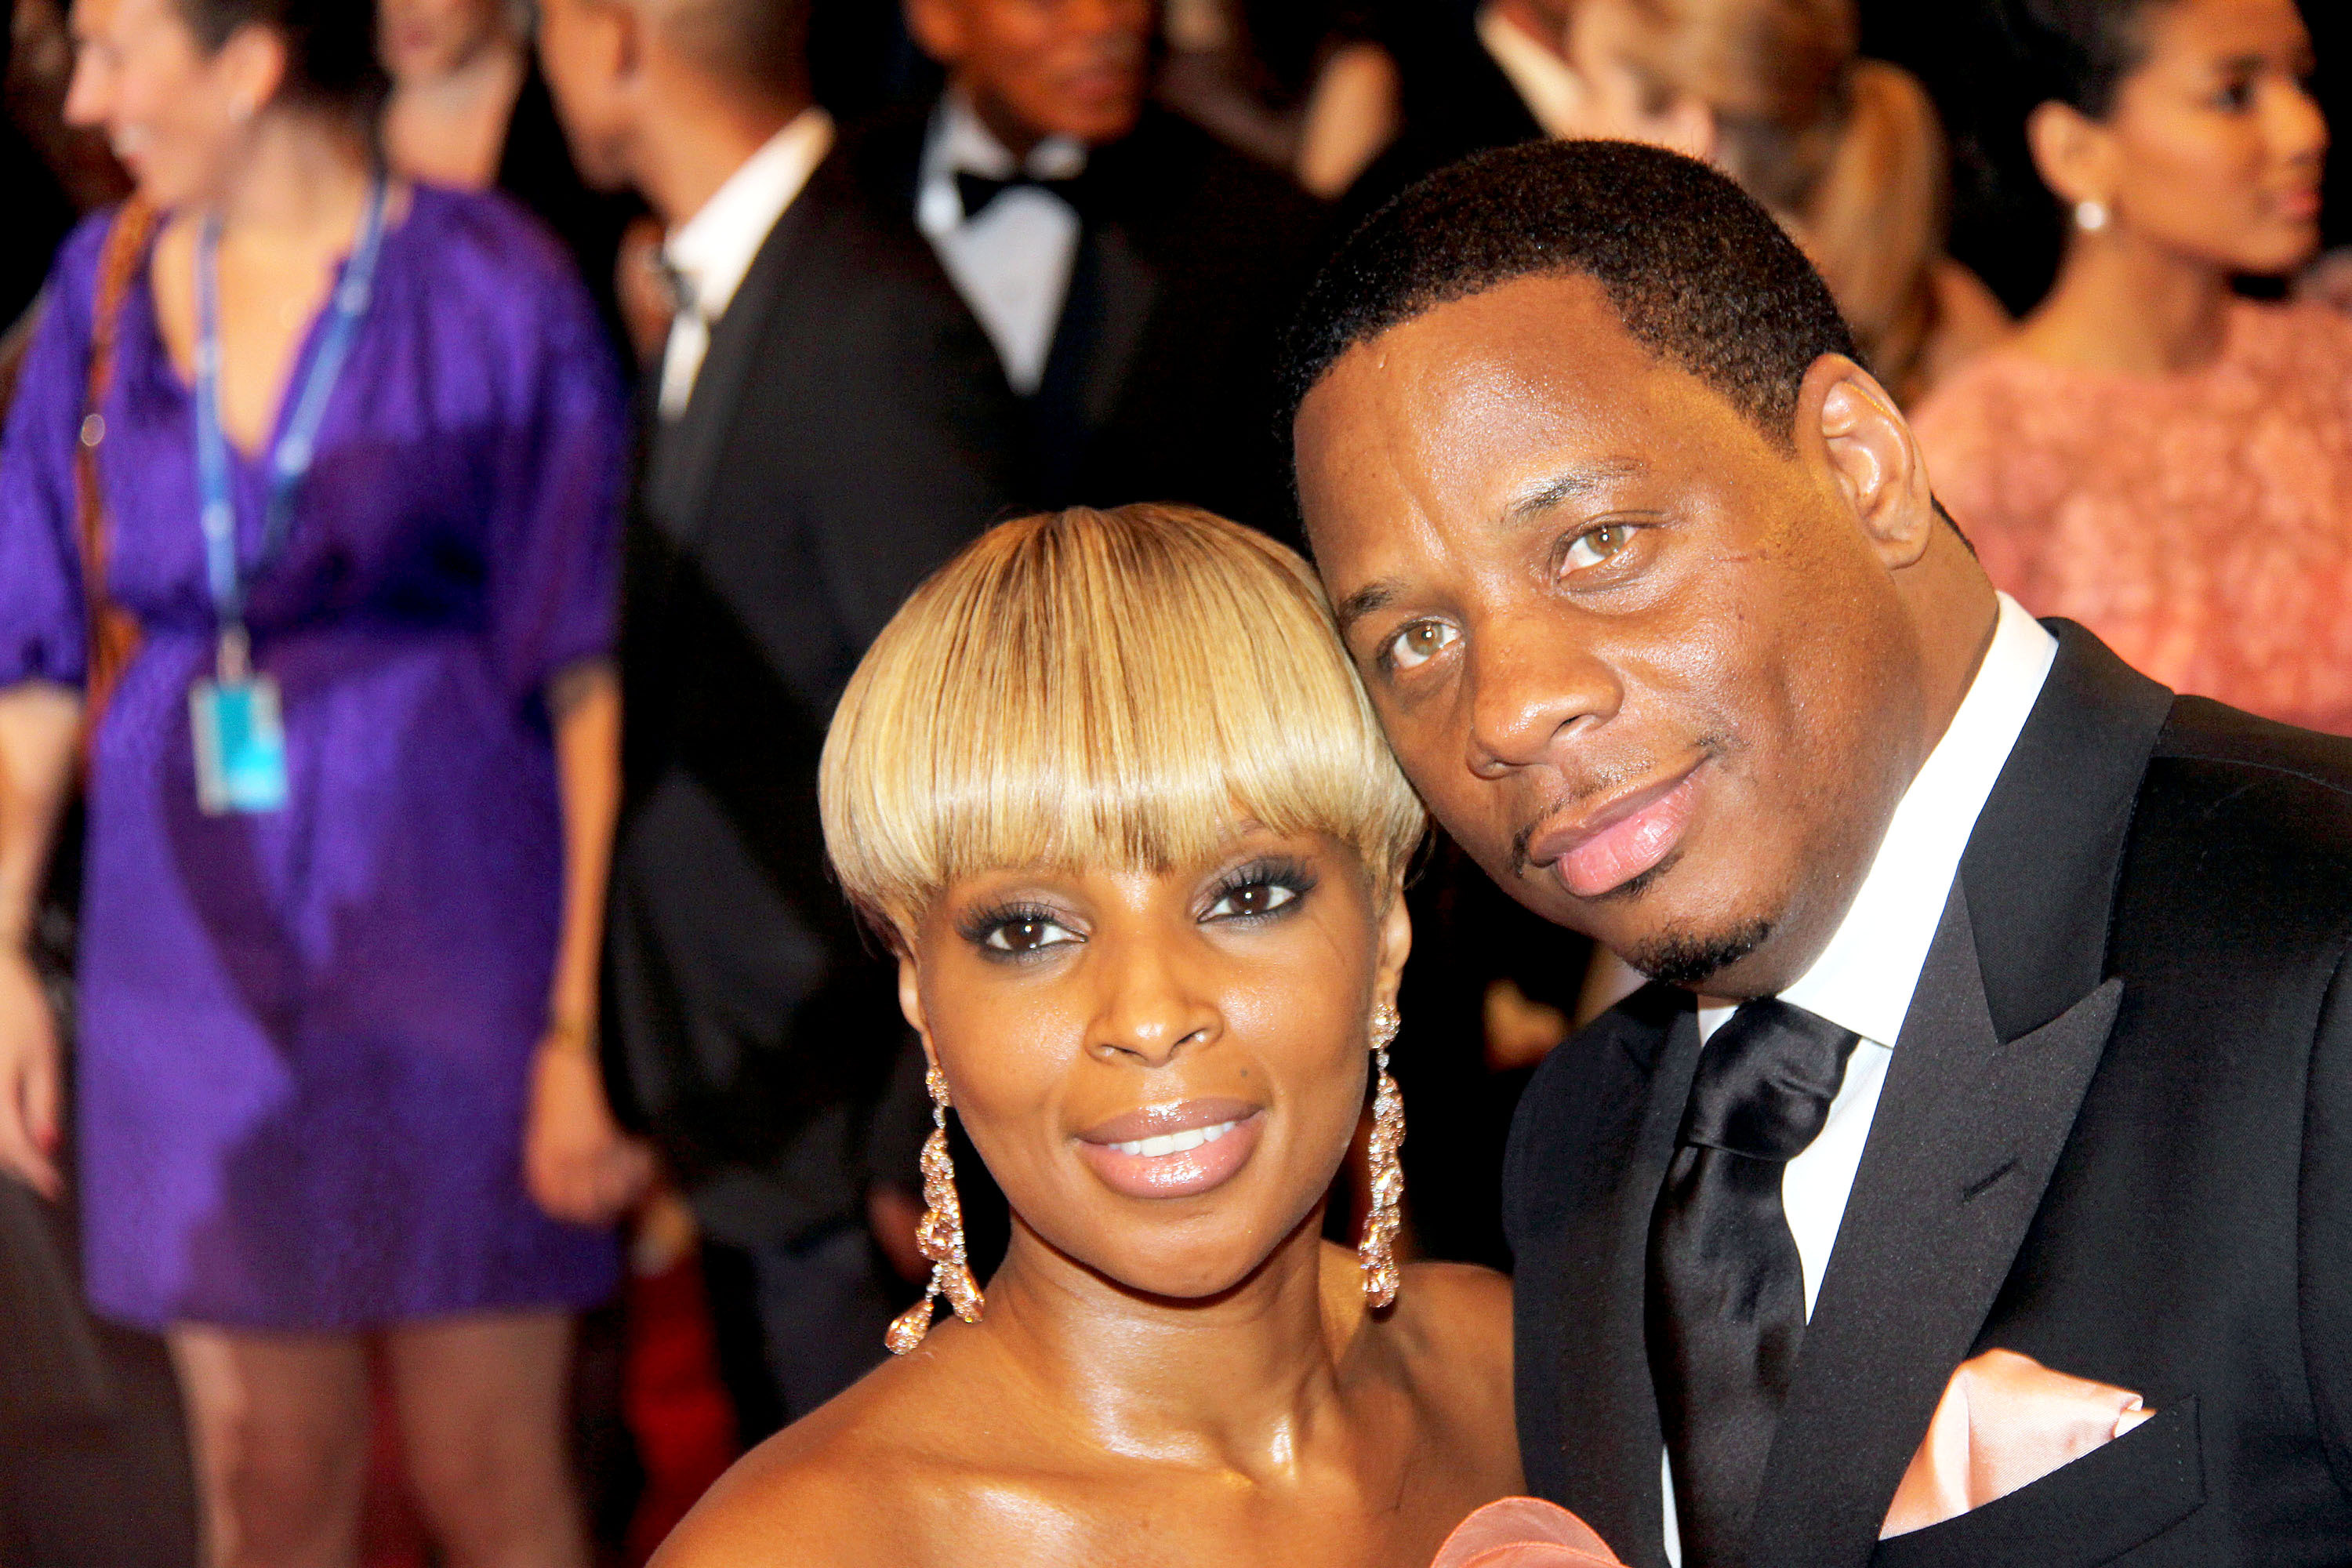 Mary J. Blige and Martin Kendu Isaacs The Costume Institute Gala Benefit to celebrate the opening of the 'American Woman: Fashioning a National Identity' exhibition held at The Metropolitan Museum of Art. Featuring: Mary J. Blige and Martin Kendu Isaacs Where: New York City, United States When: 03 May 2010 Credit: WENN